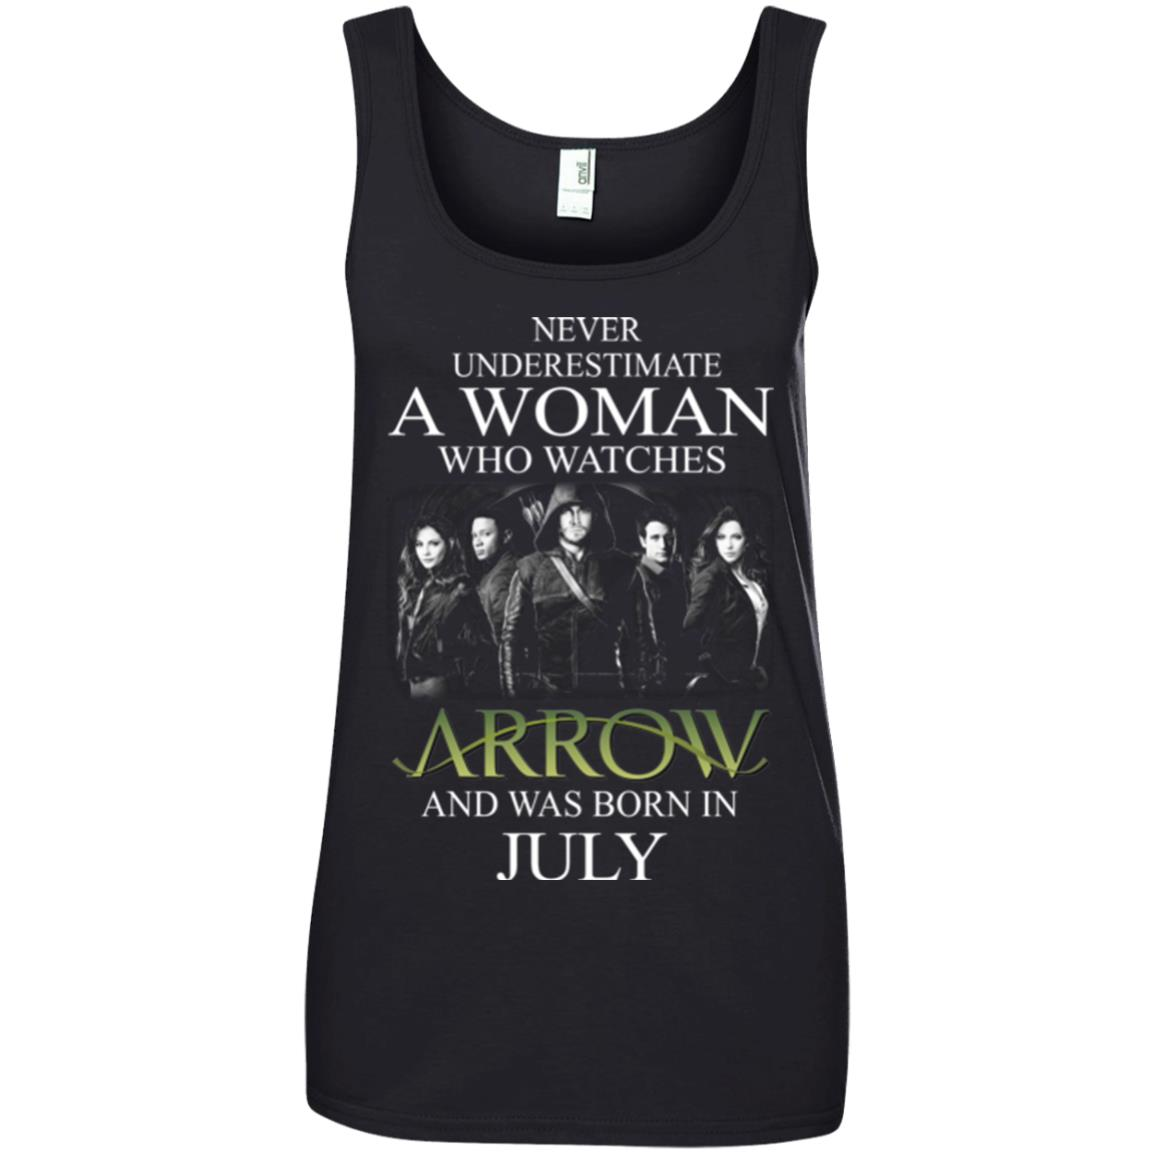 Never Underestimate A woman who watches Arrow and was born in July shirt - image 1526